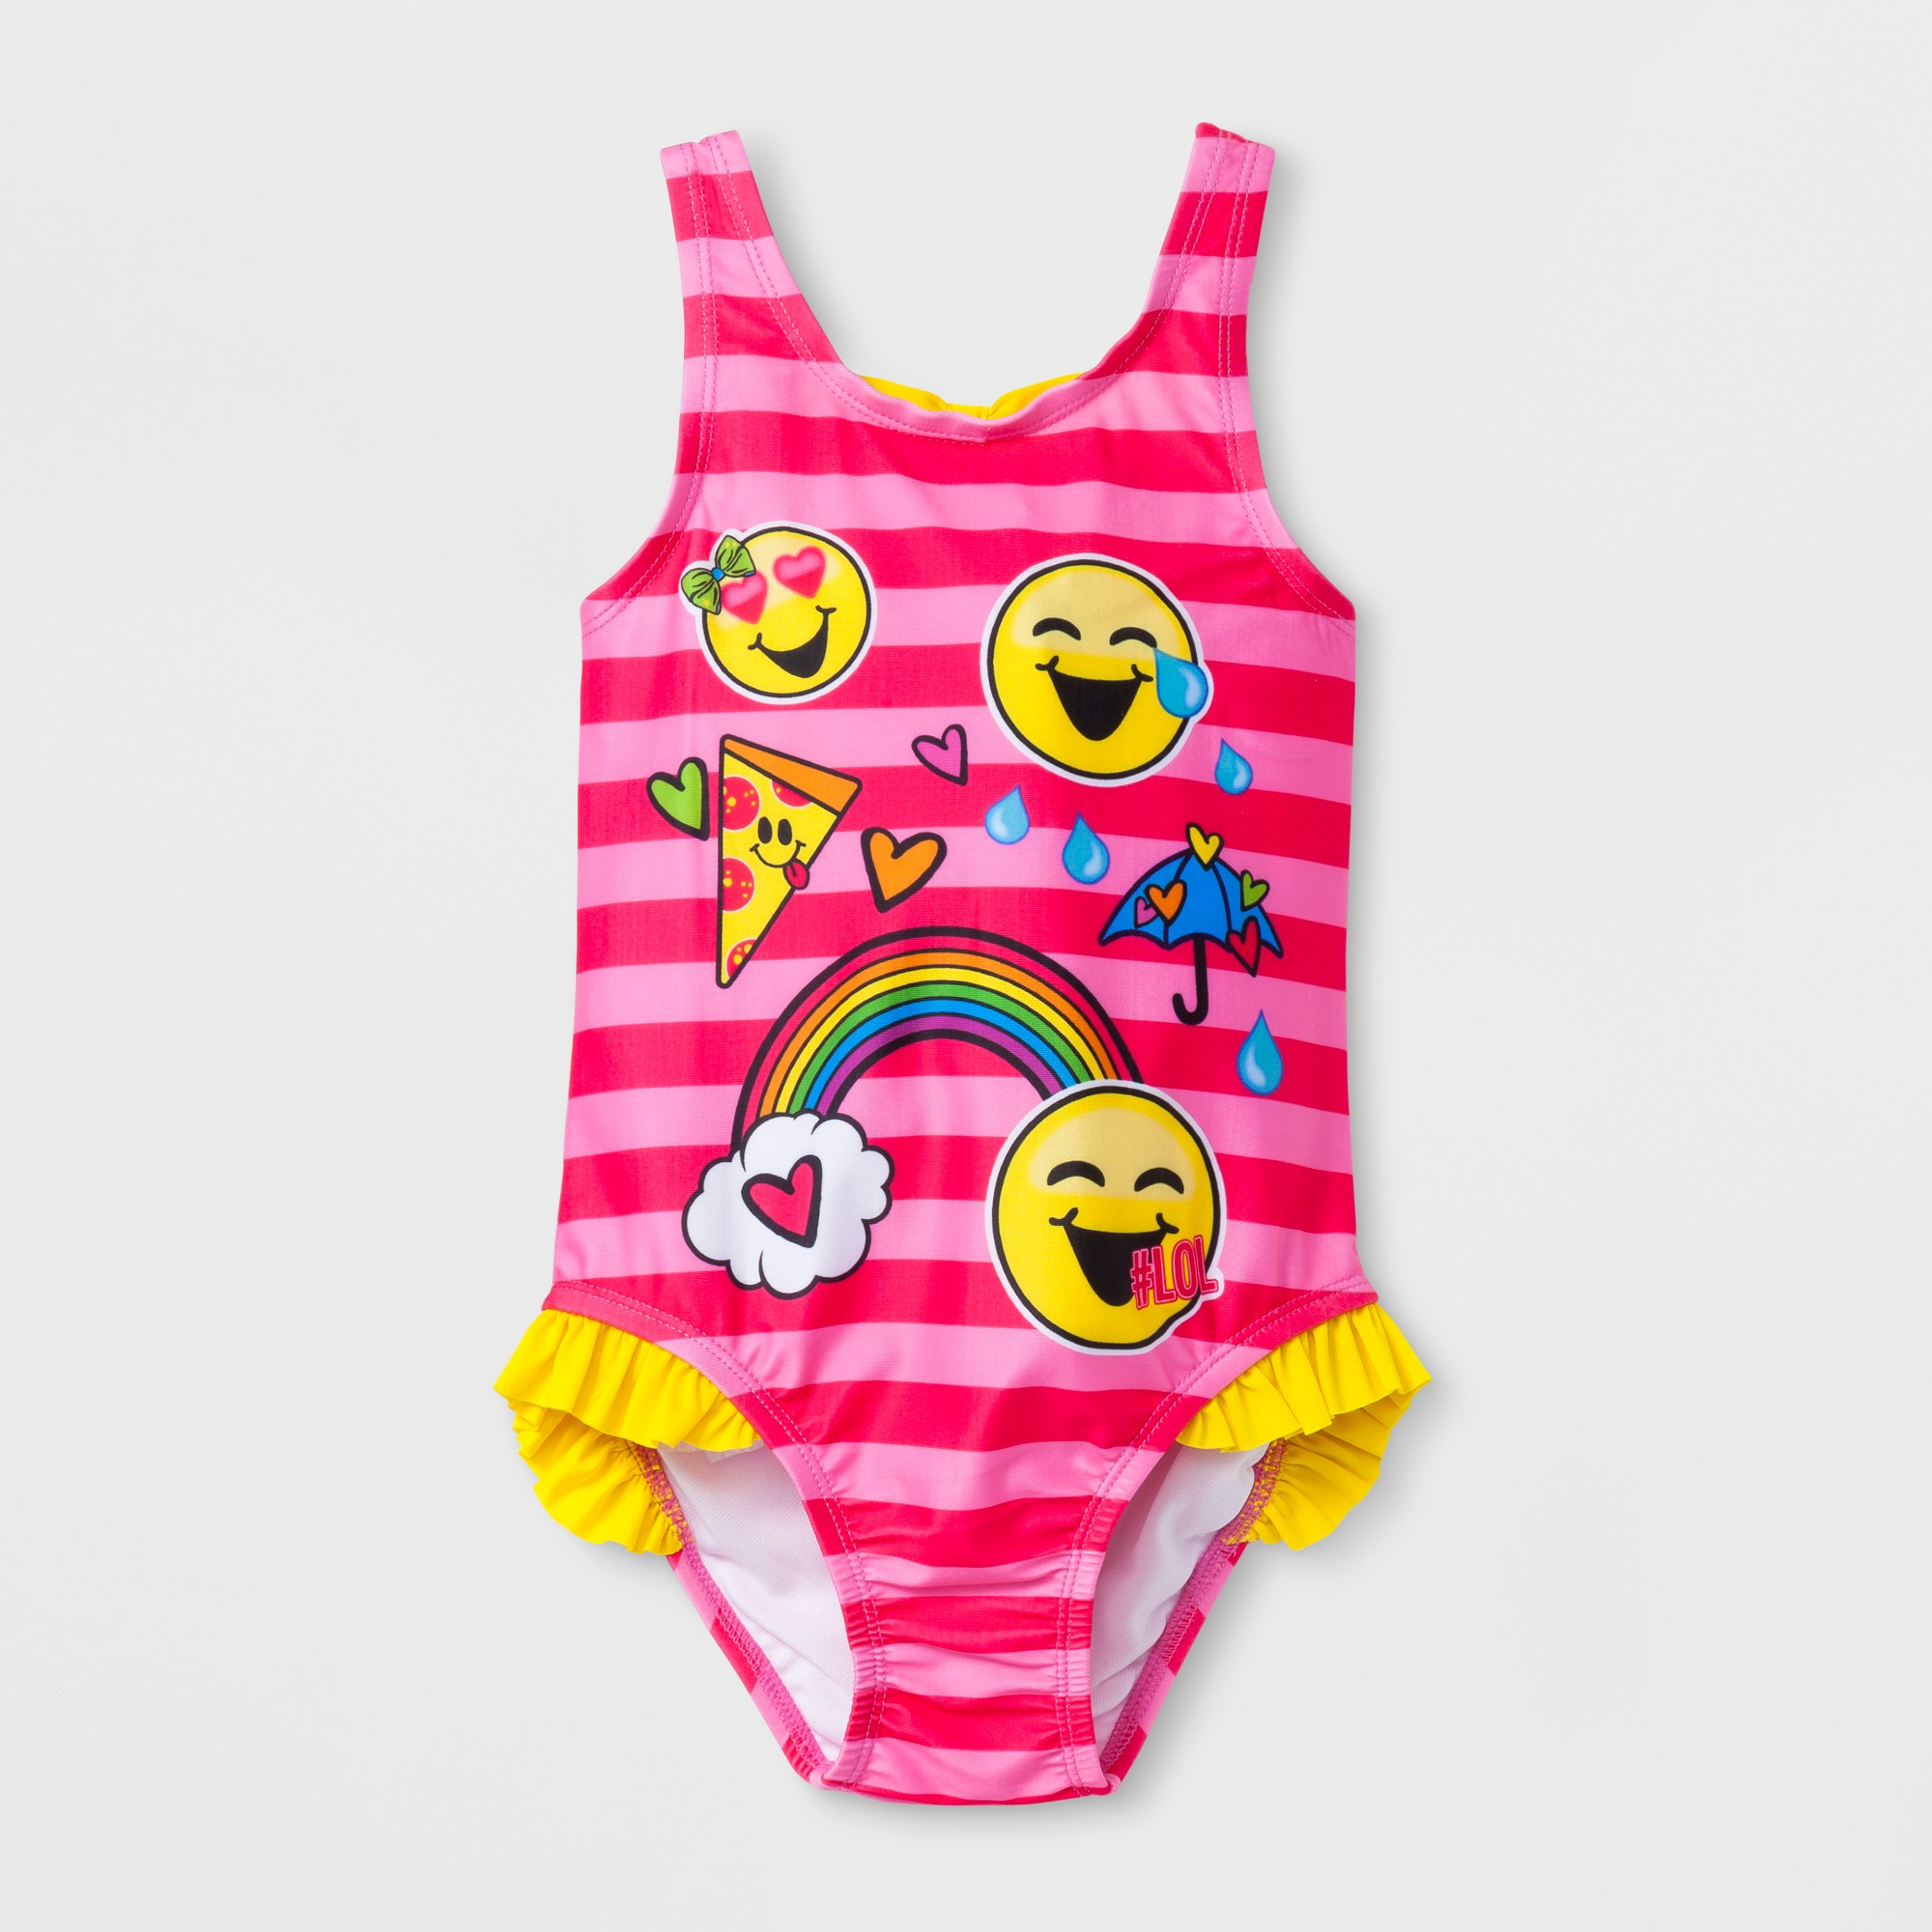 b59cbb34a127a Toddler Girls' EmojiNation® One Piece Swimsuit - Pink 3T | Products ...